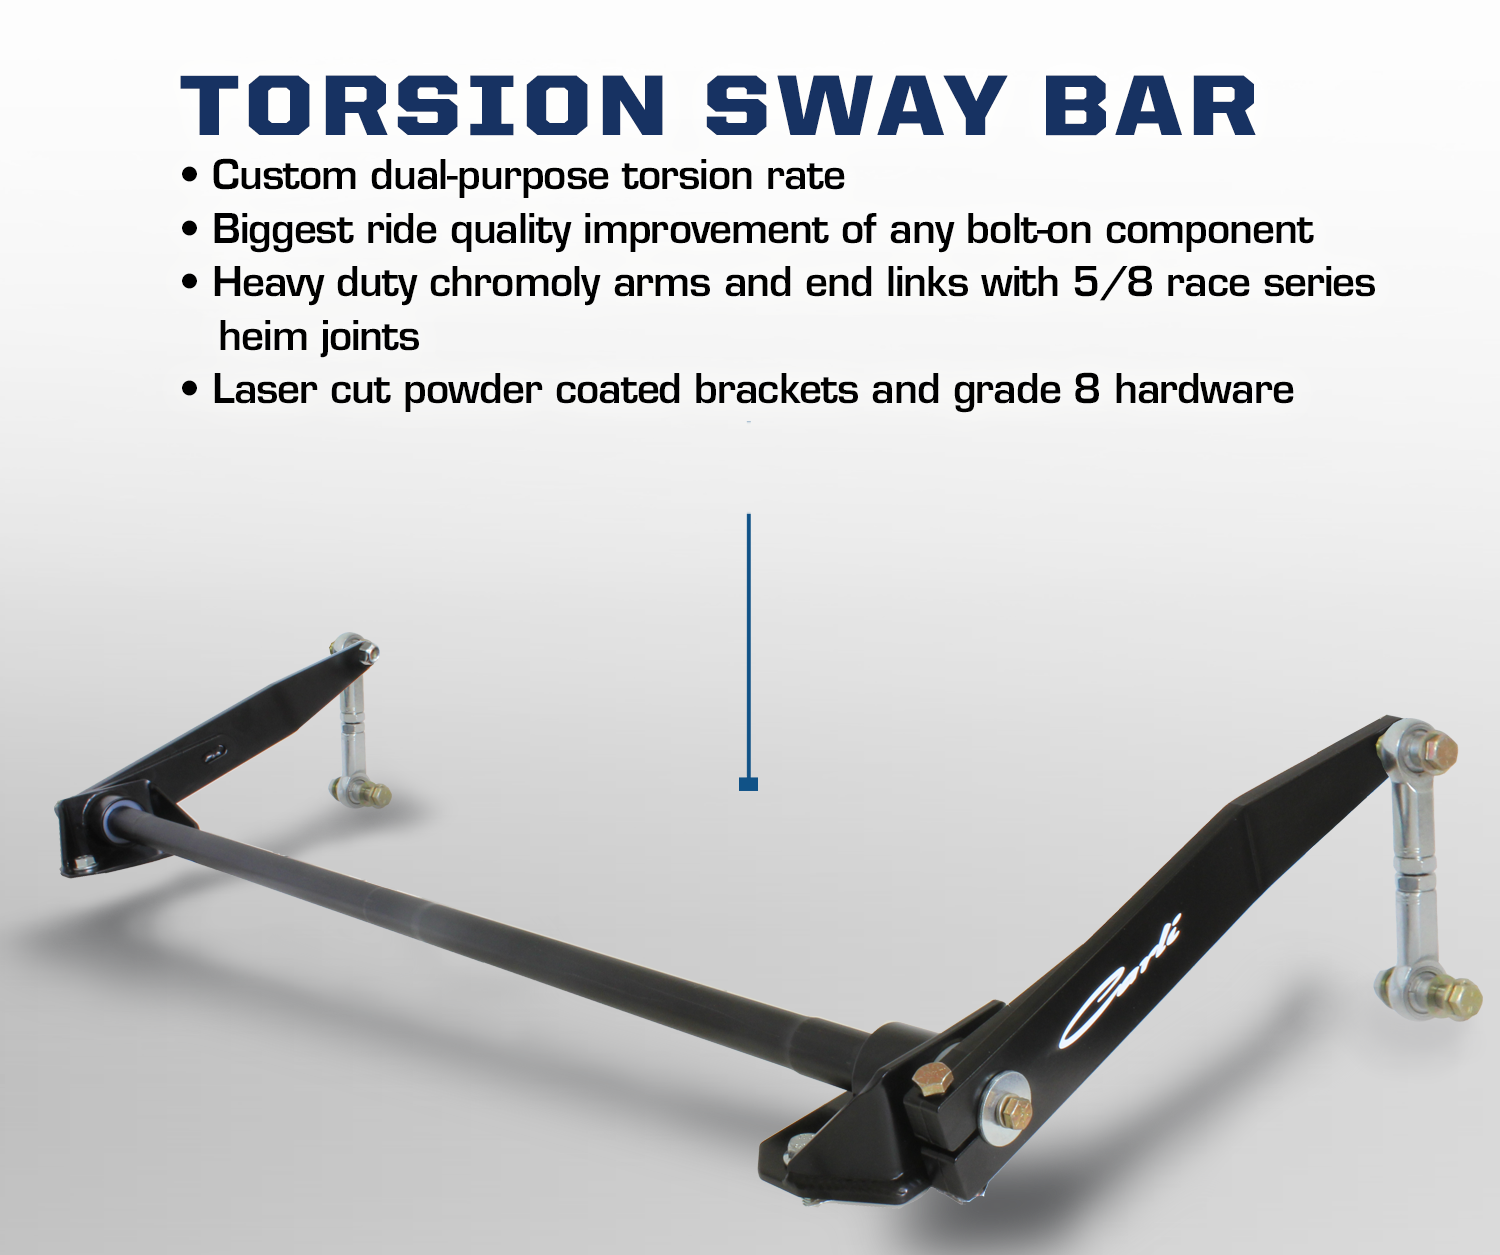 Carli Dodge Ram Torsion Sway Bar